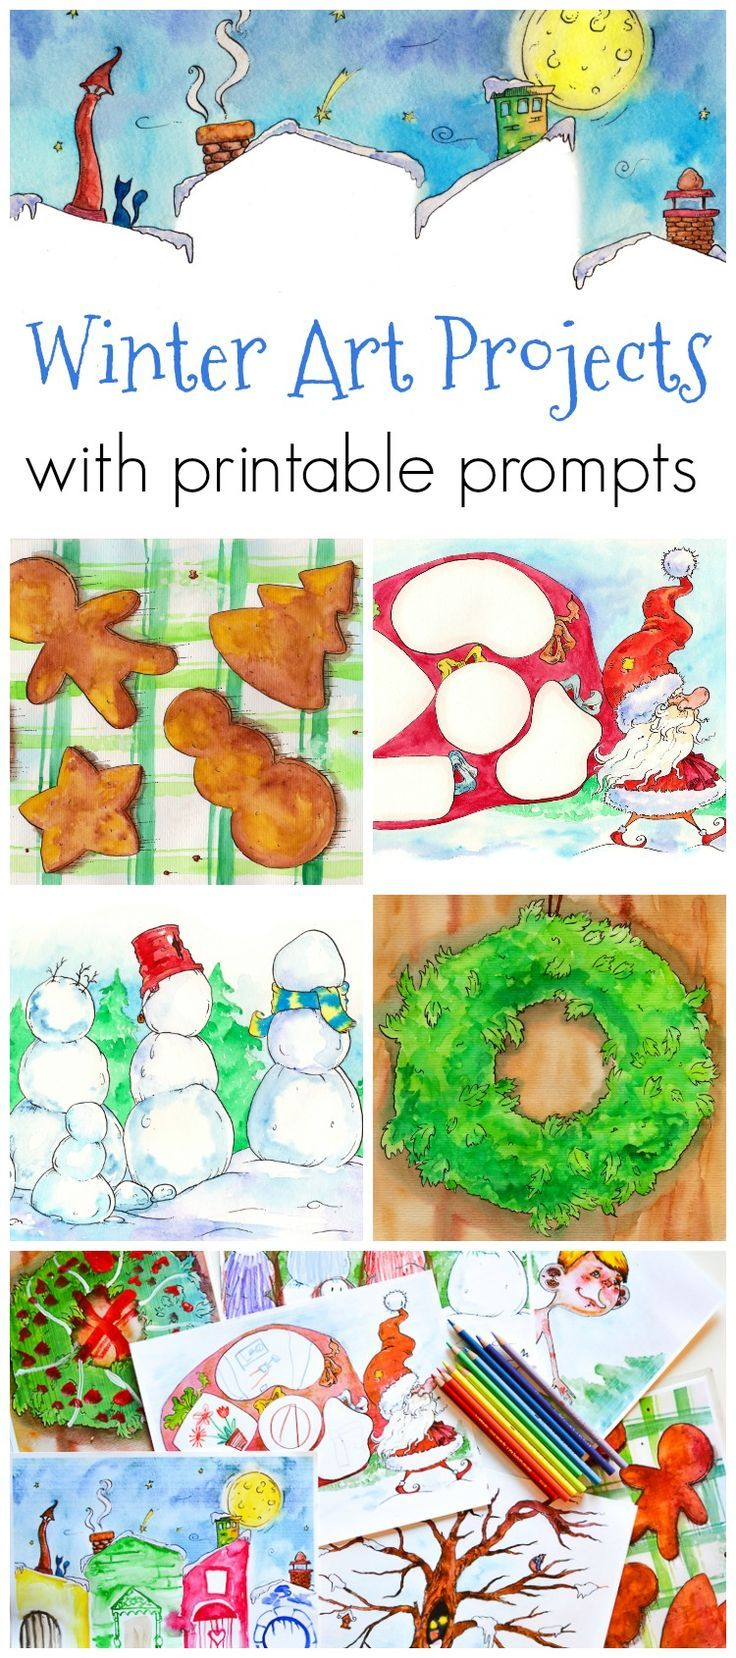 573 best ❊ Snow Adorable Winter Crafts images on Pinterest ...